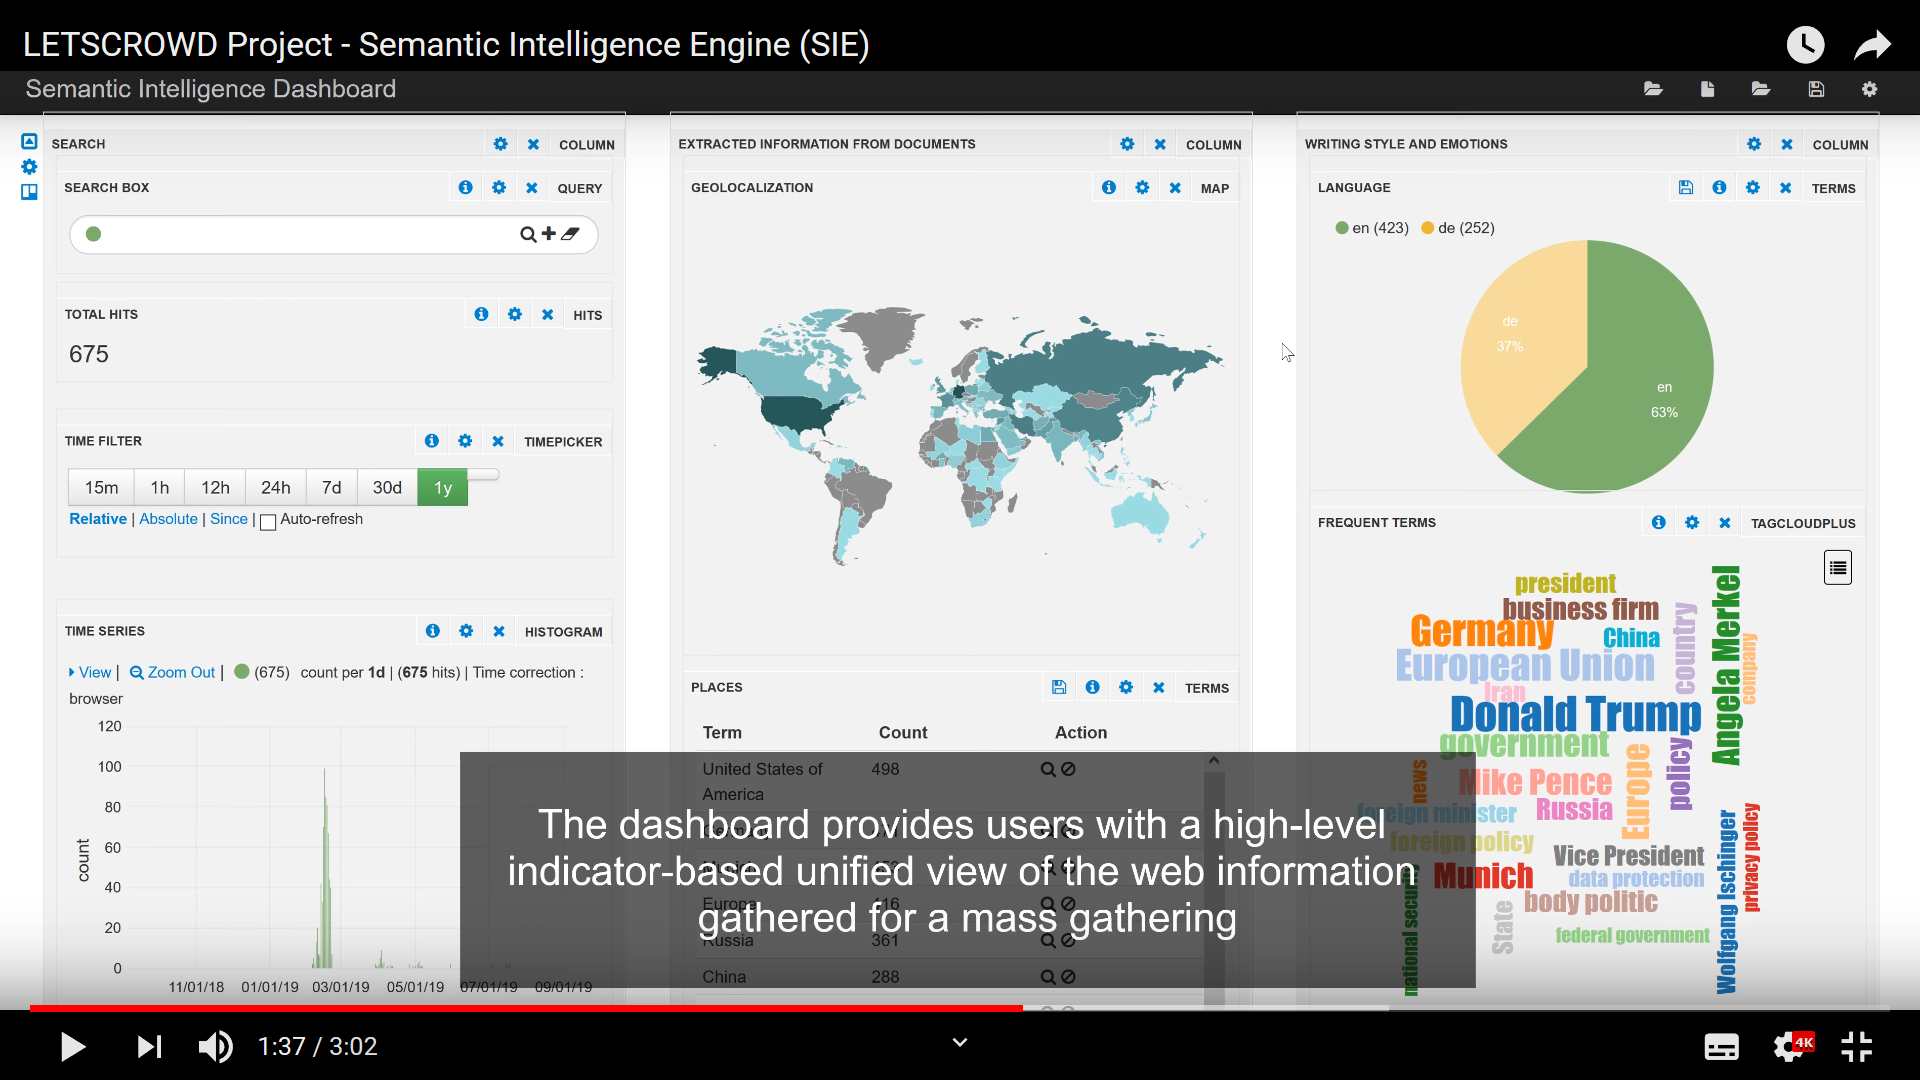 Semantic Intelligence Engine (SIE) – LETSCROWD Tool Videos #2